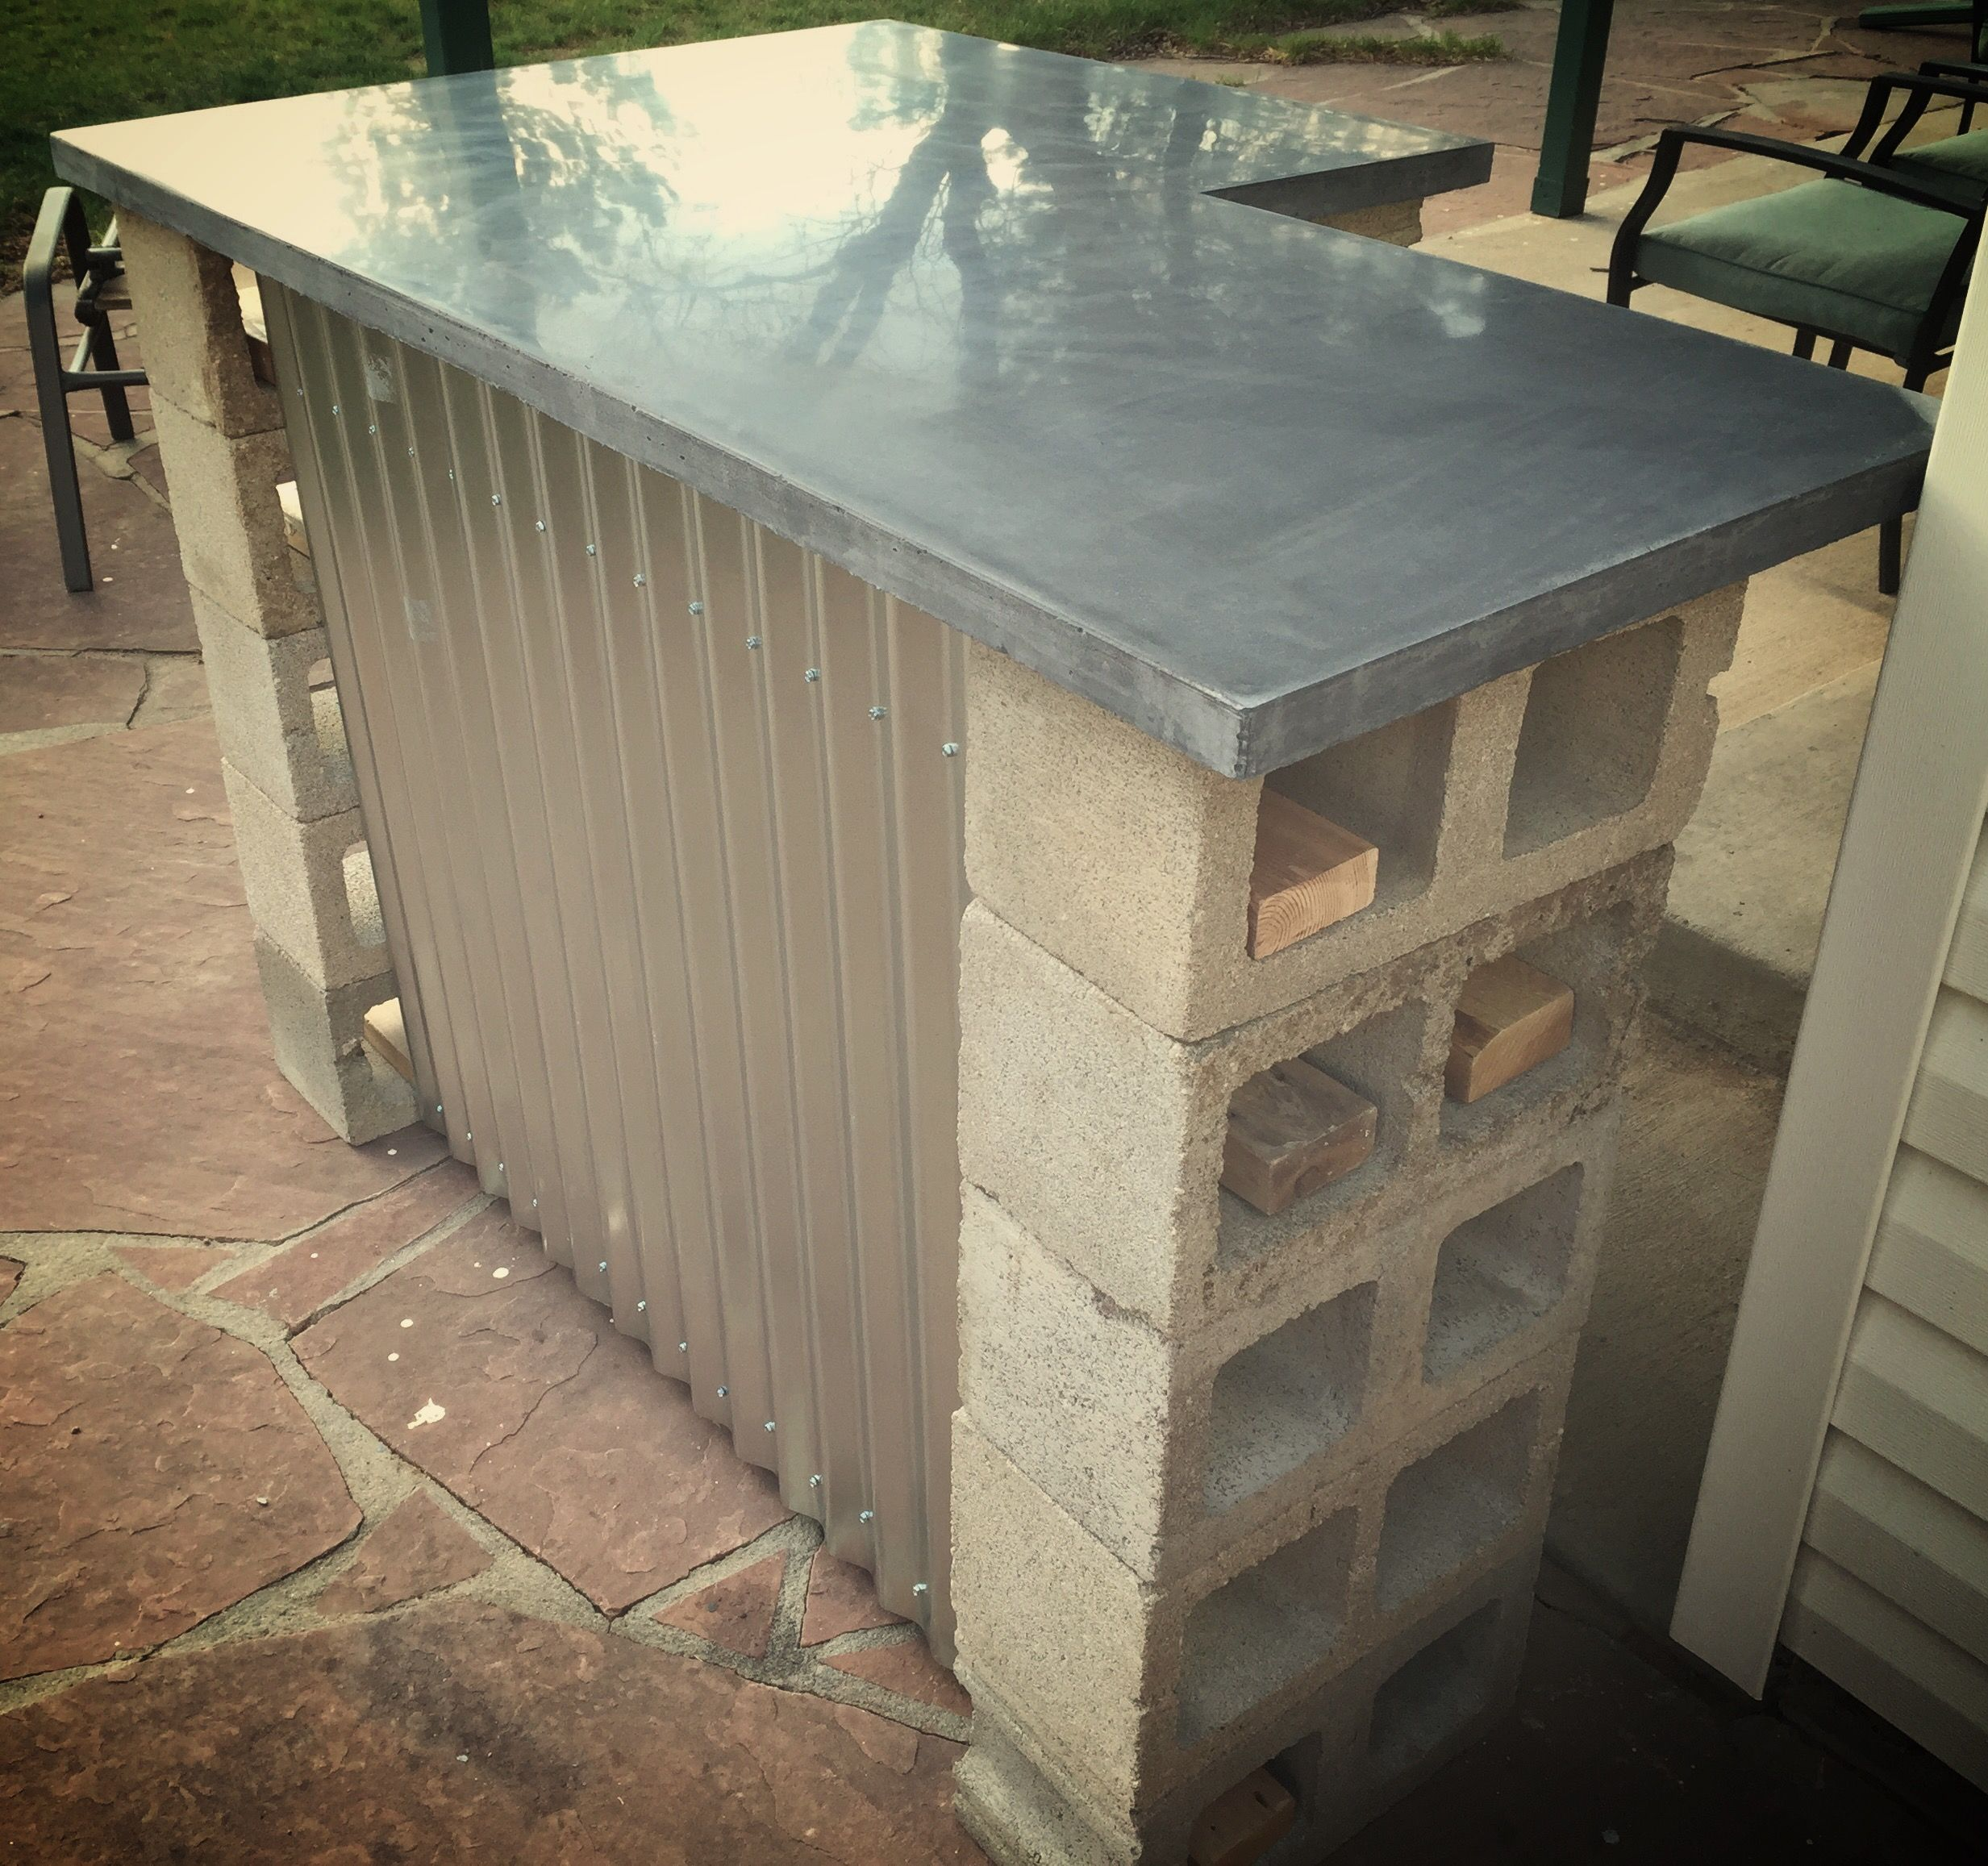 Truly Rustic Outdoor Bar Custom Grey Concrete Countertop With Cinder Blocks For Support Some 2x4s Fo Diy Outdoor Bar Outdoor Patio Bar Cinder Block Furniture